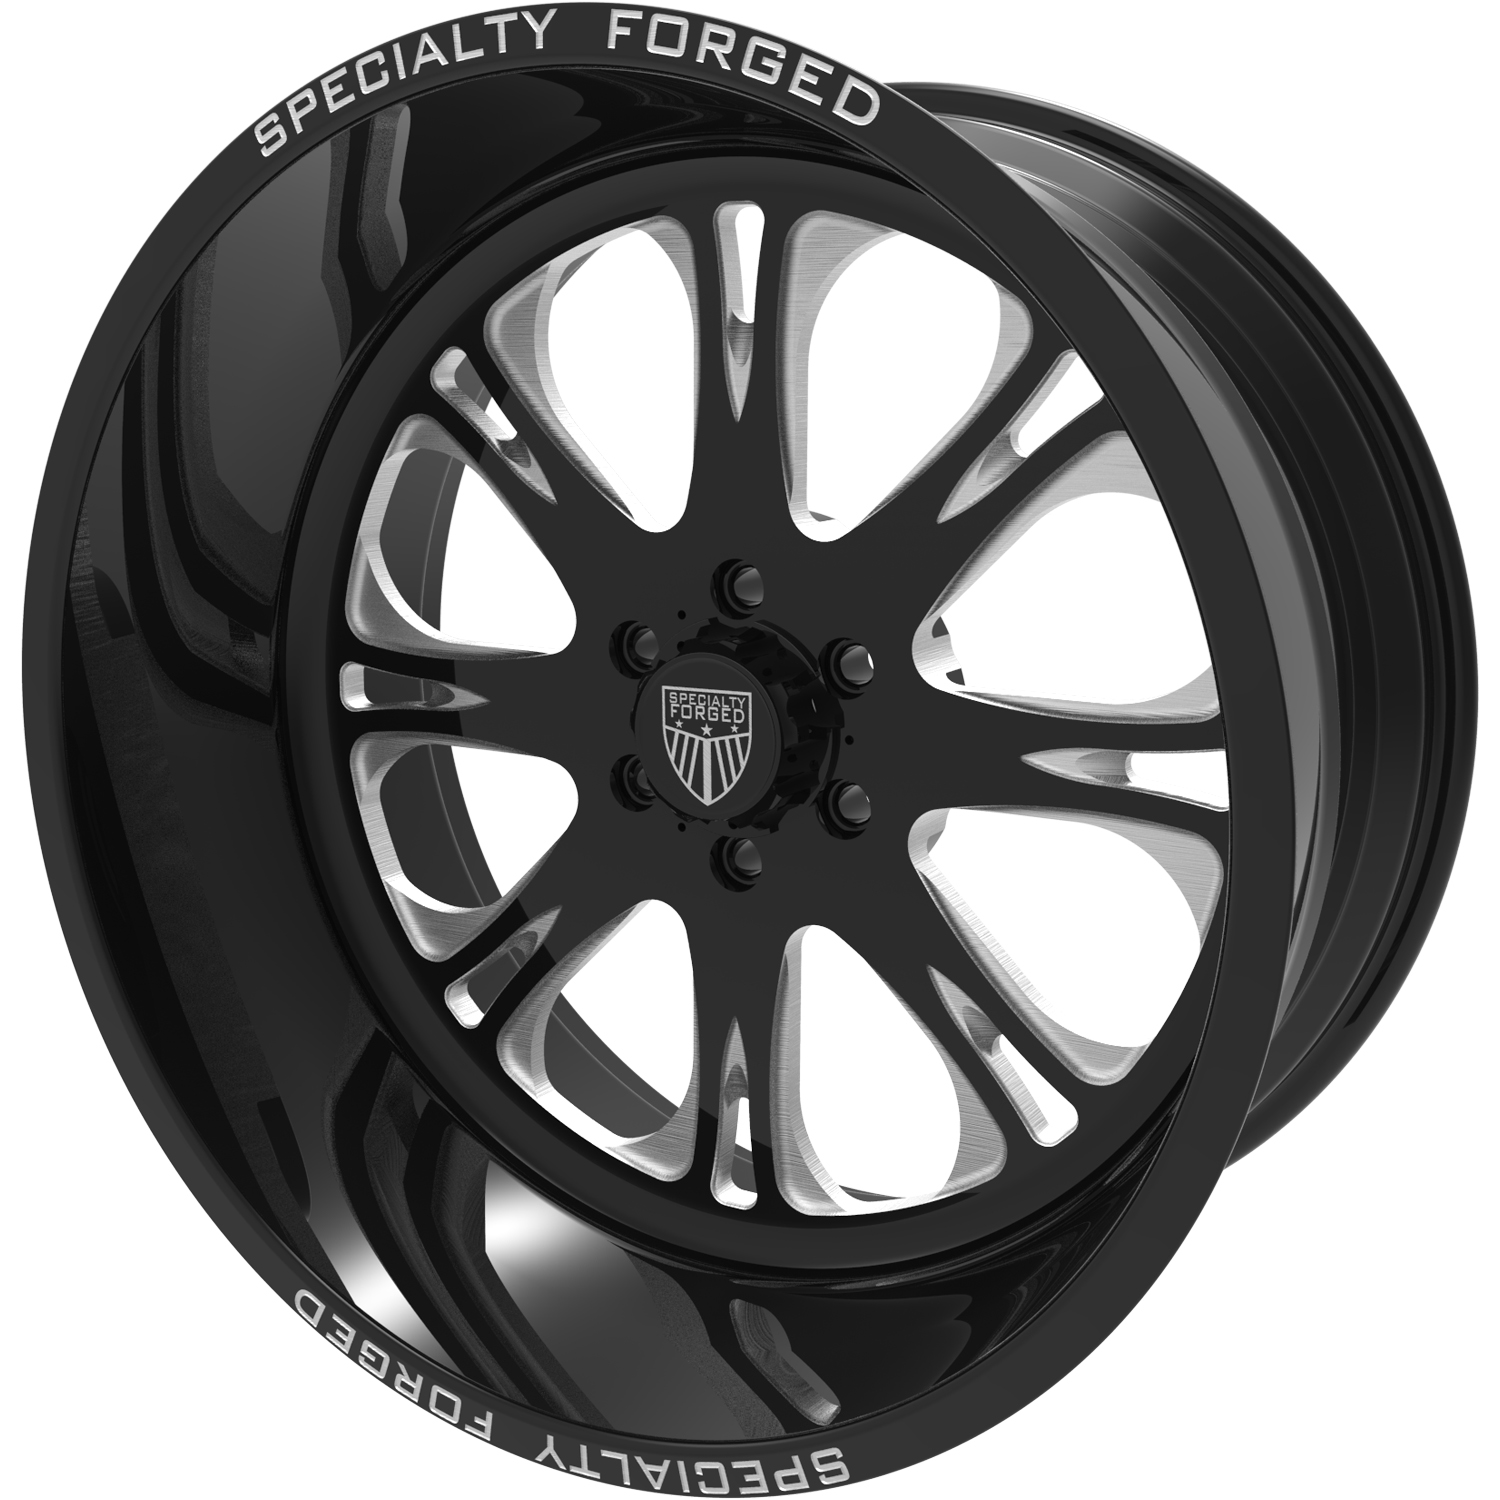 Specialty Forged SF002 20x14  76mm | SF002 2014 6x550 BM